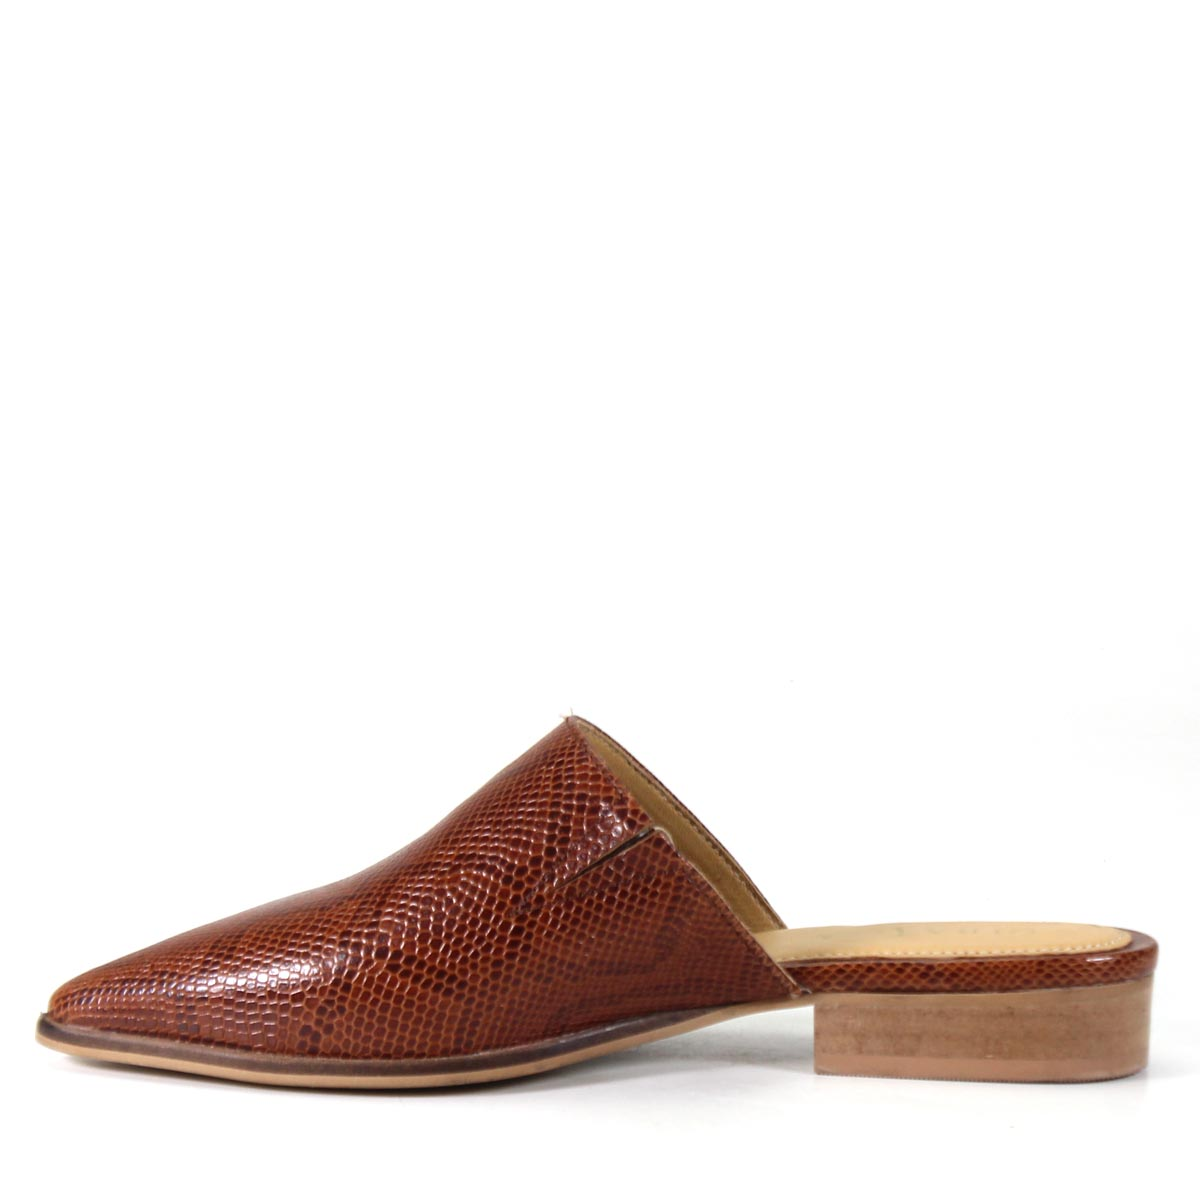 Diba True Women's High Up Flat Pointed Mule Genuine Leather Snake Printed Cognac Side View